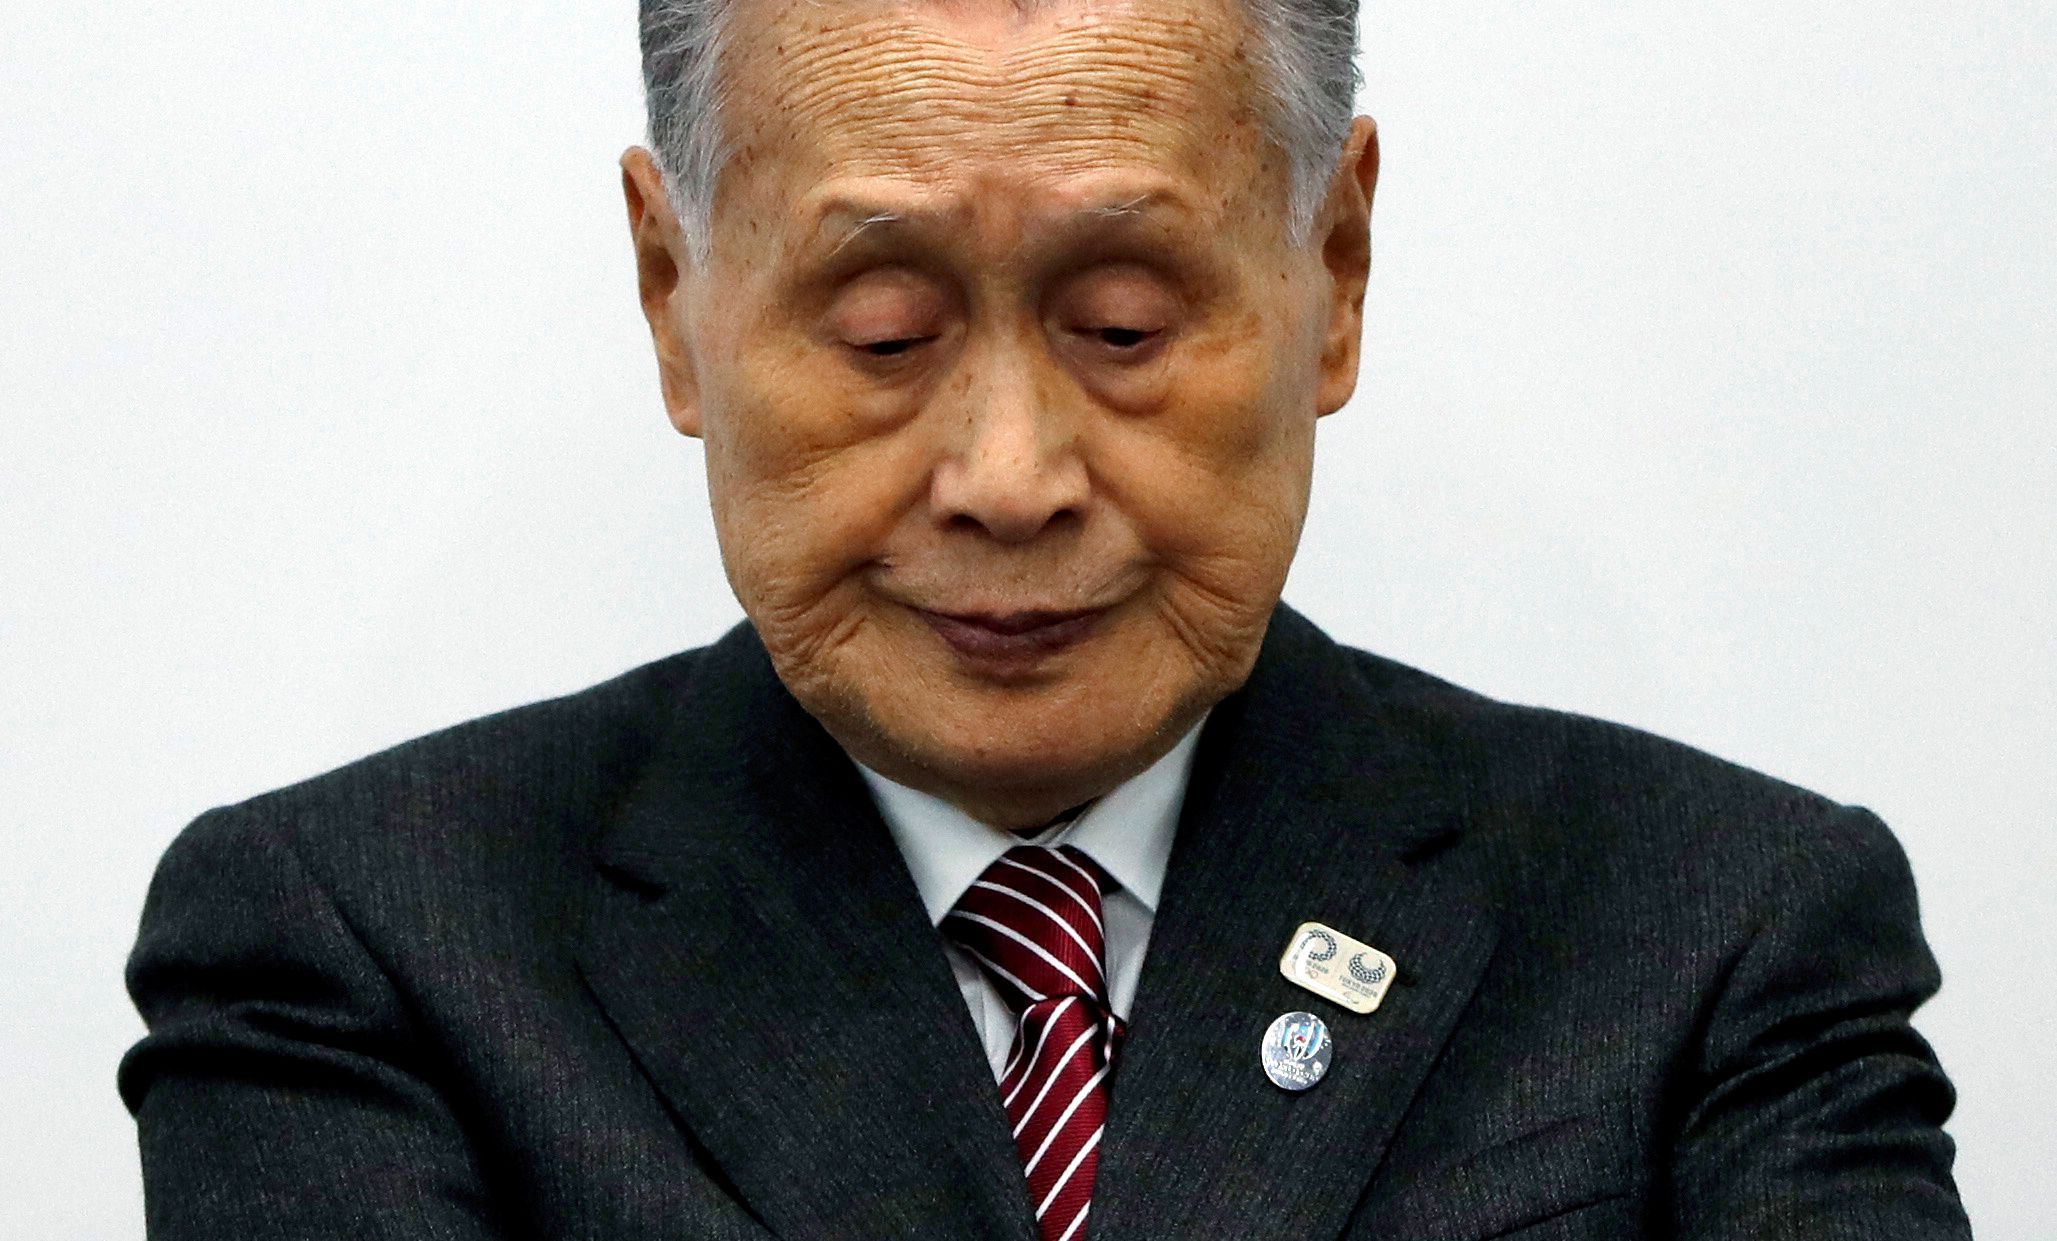 Yoshiro Mori, President of the Tokyo 2020 Olympic Games Organising Committee, attends a news conference in Tokyo, Japan March 23, 2020. REUTERS/Issei Kato